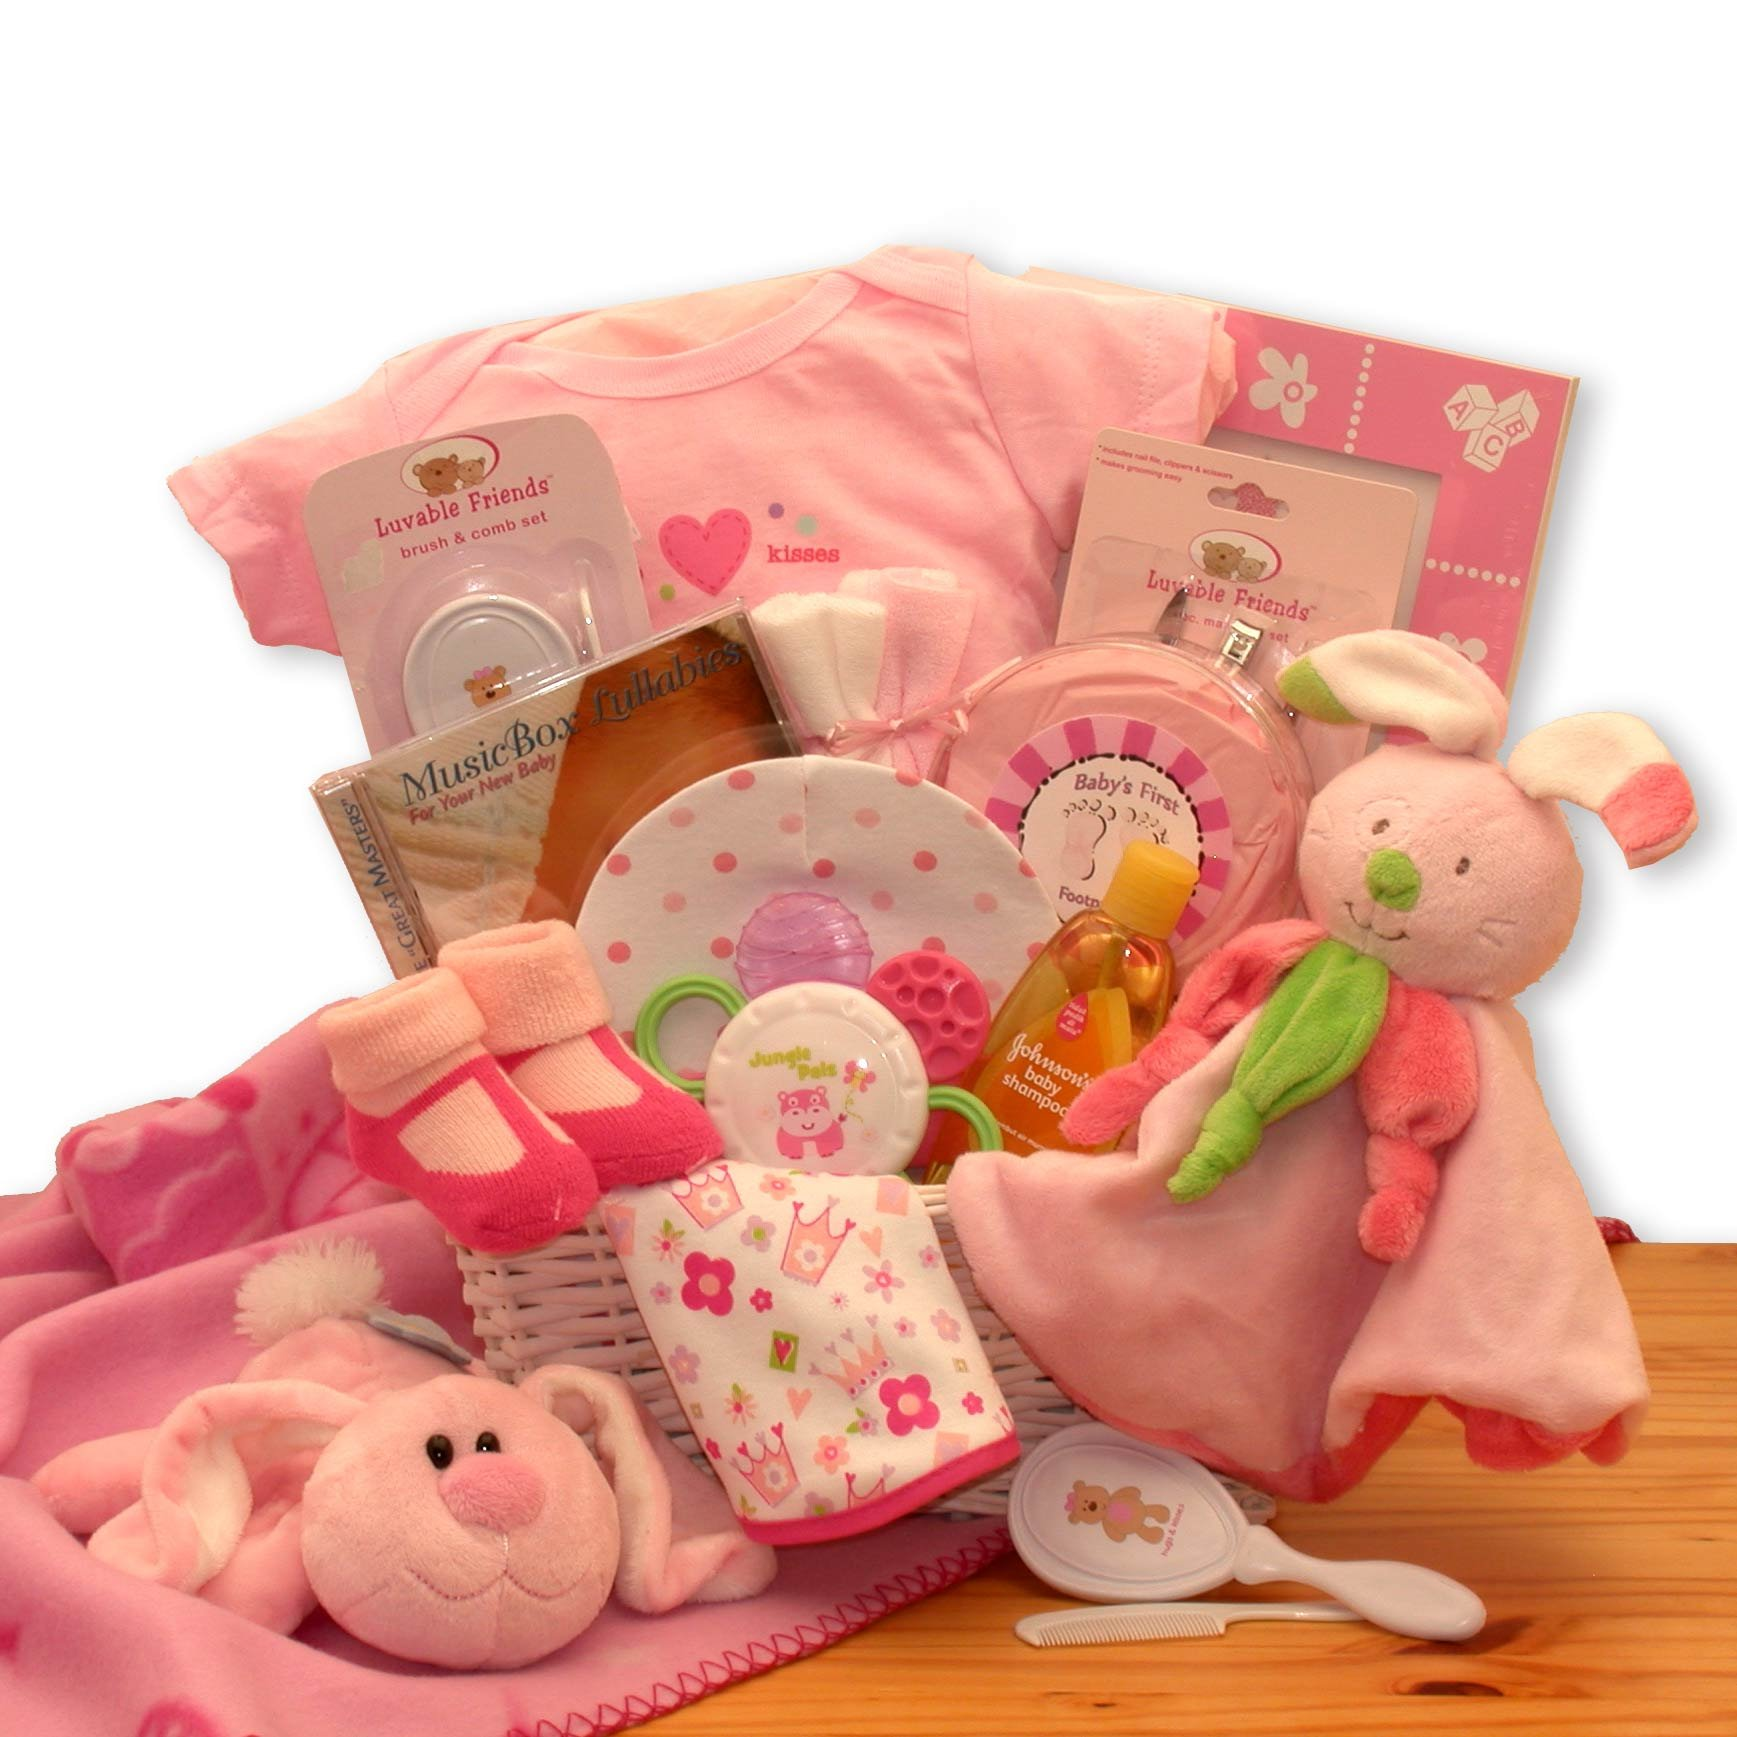 Hunny Bunny's Gift Basket for the New Baby